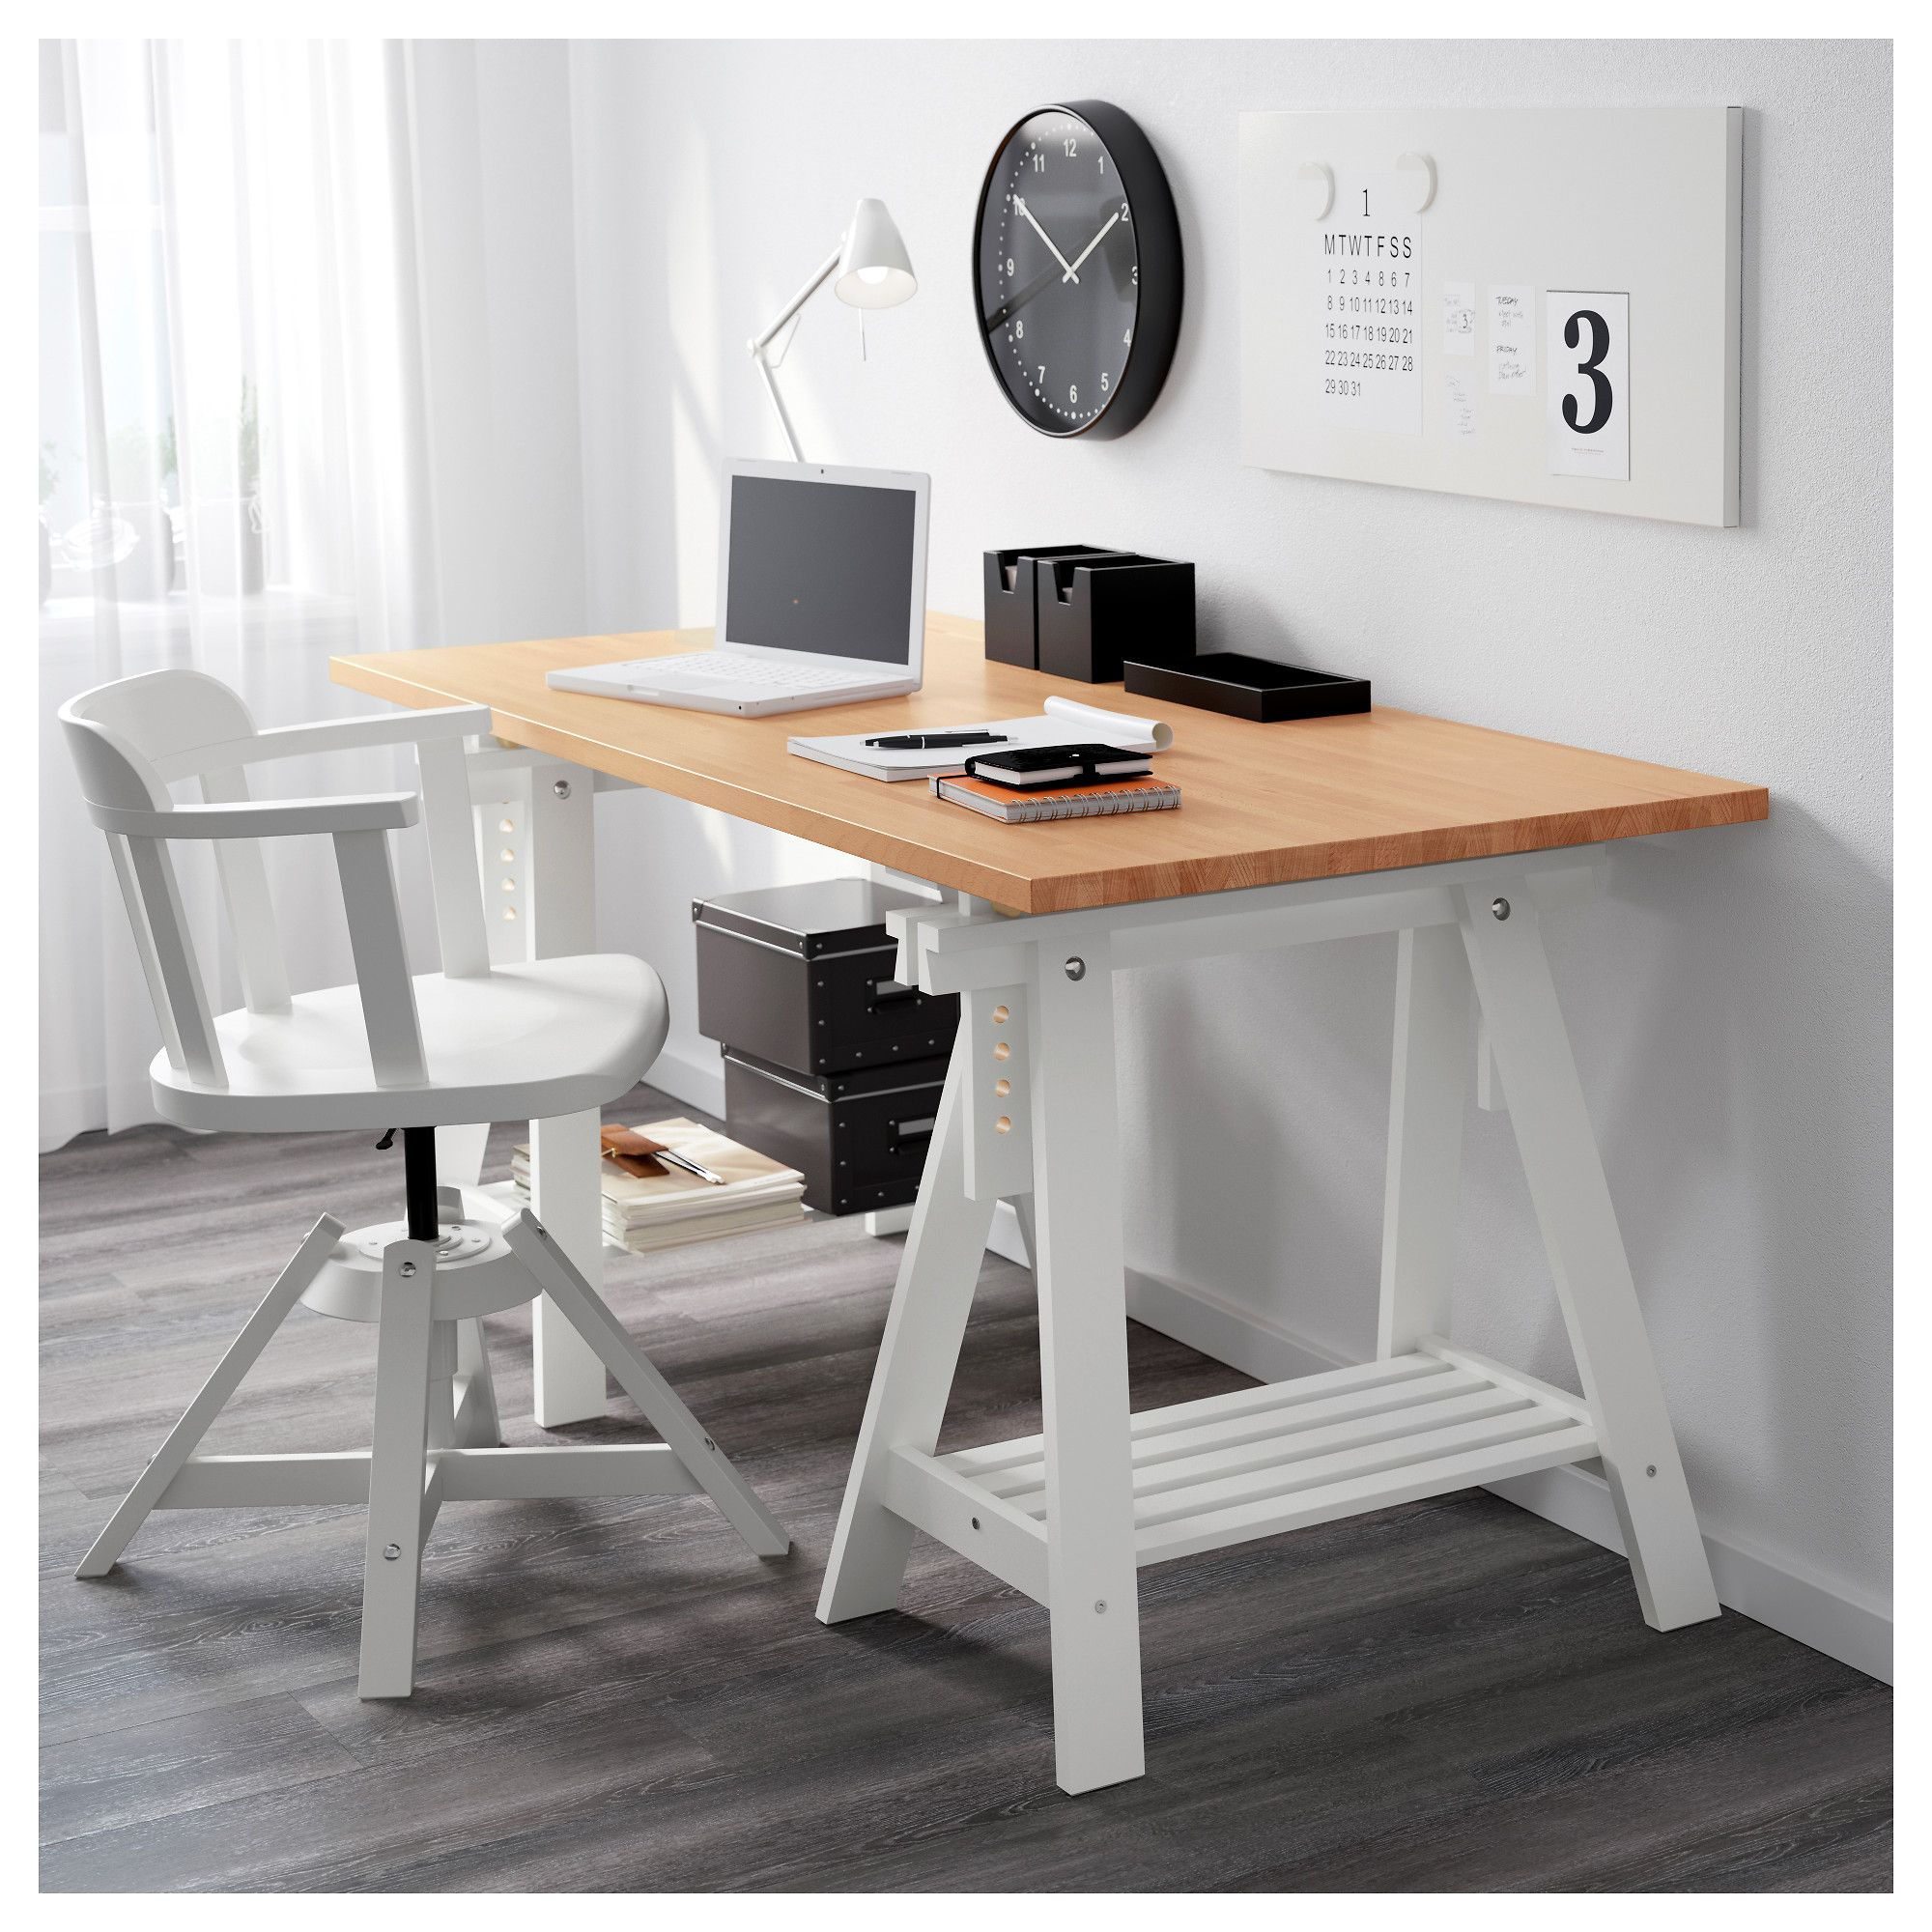 Ikea gerton tabletop beech in 2019 products home office desks ikea table tops ikea table - Table bureau ikea ...